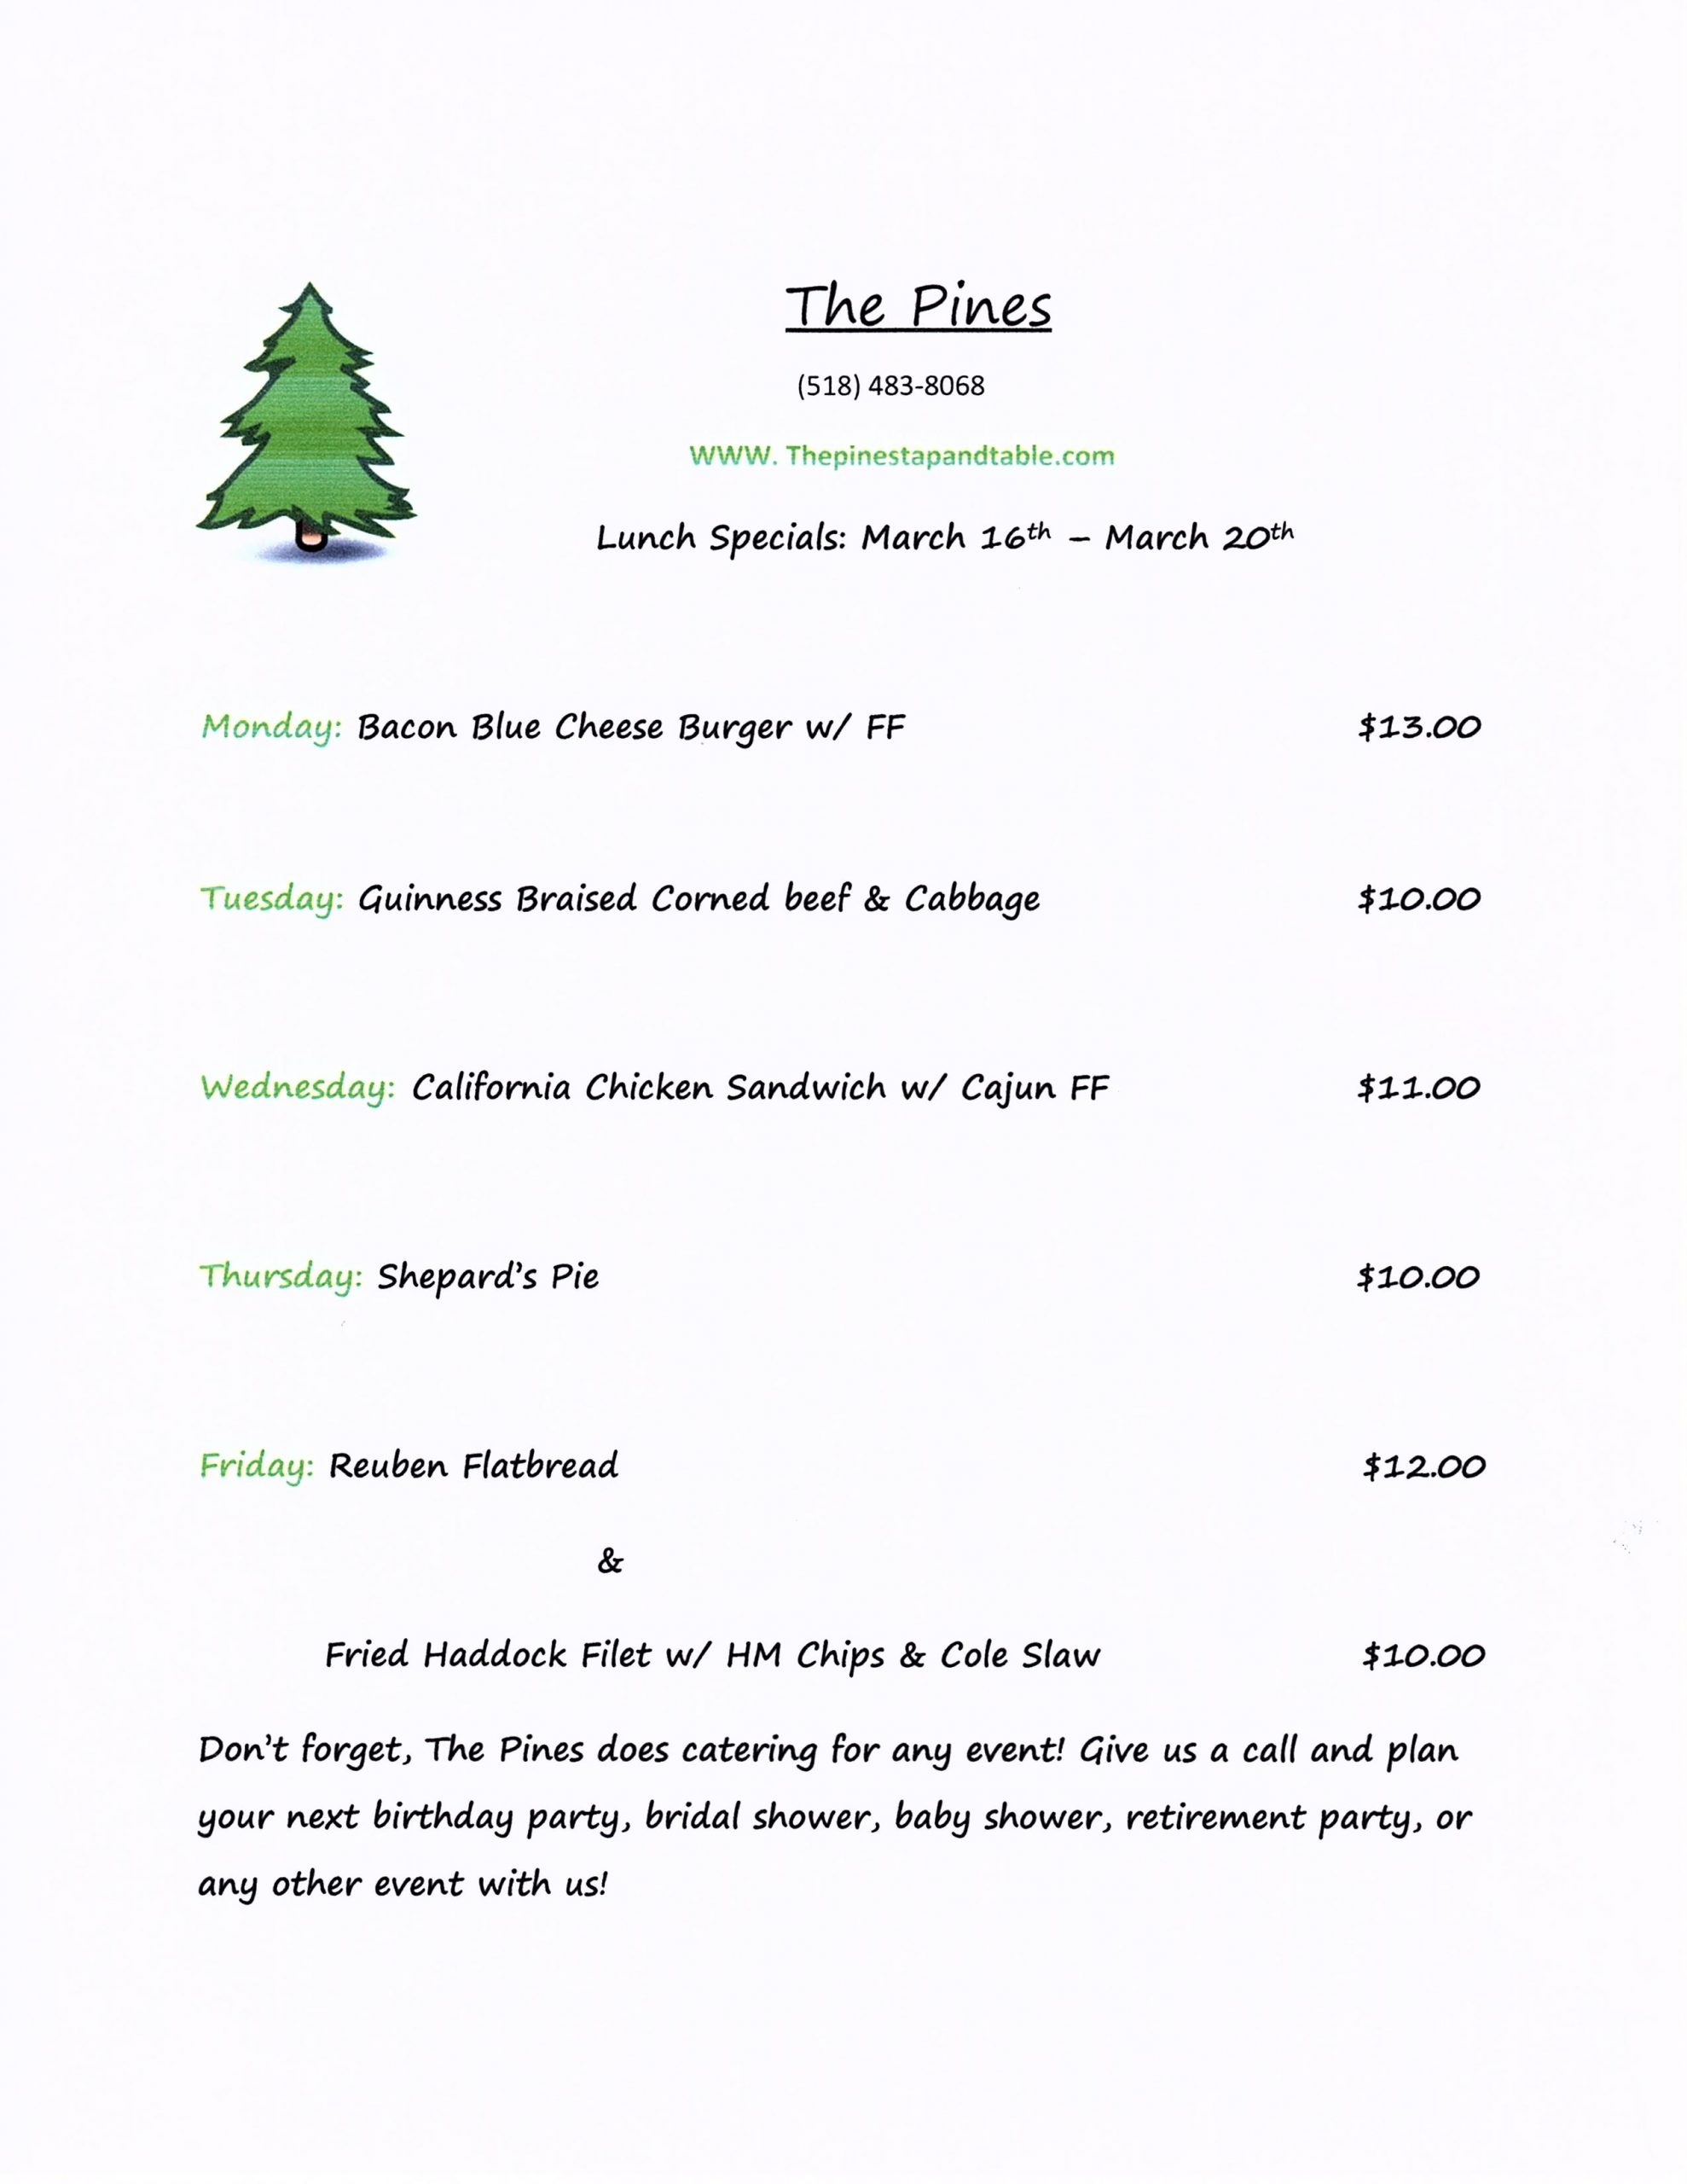 The Pines Tap and Table Lunch Specials 3/16